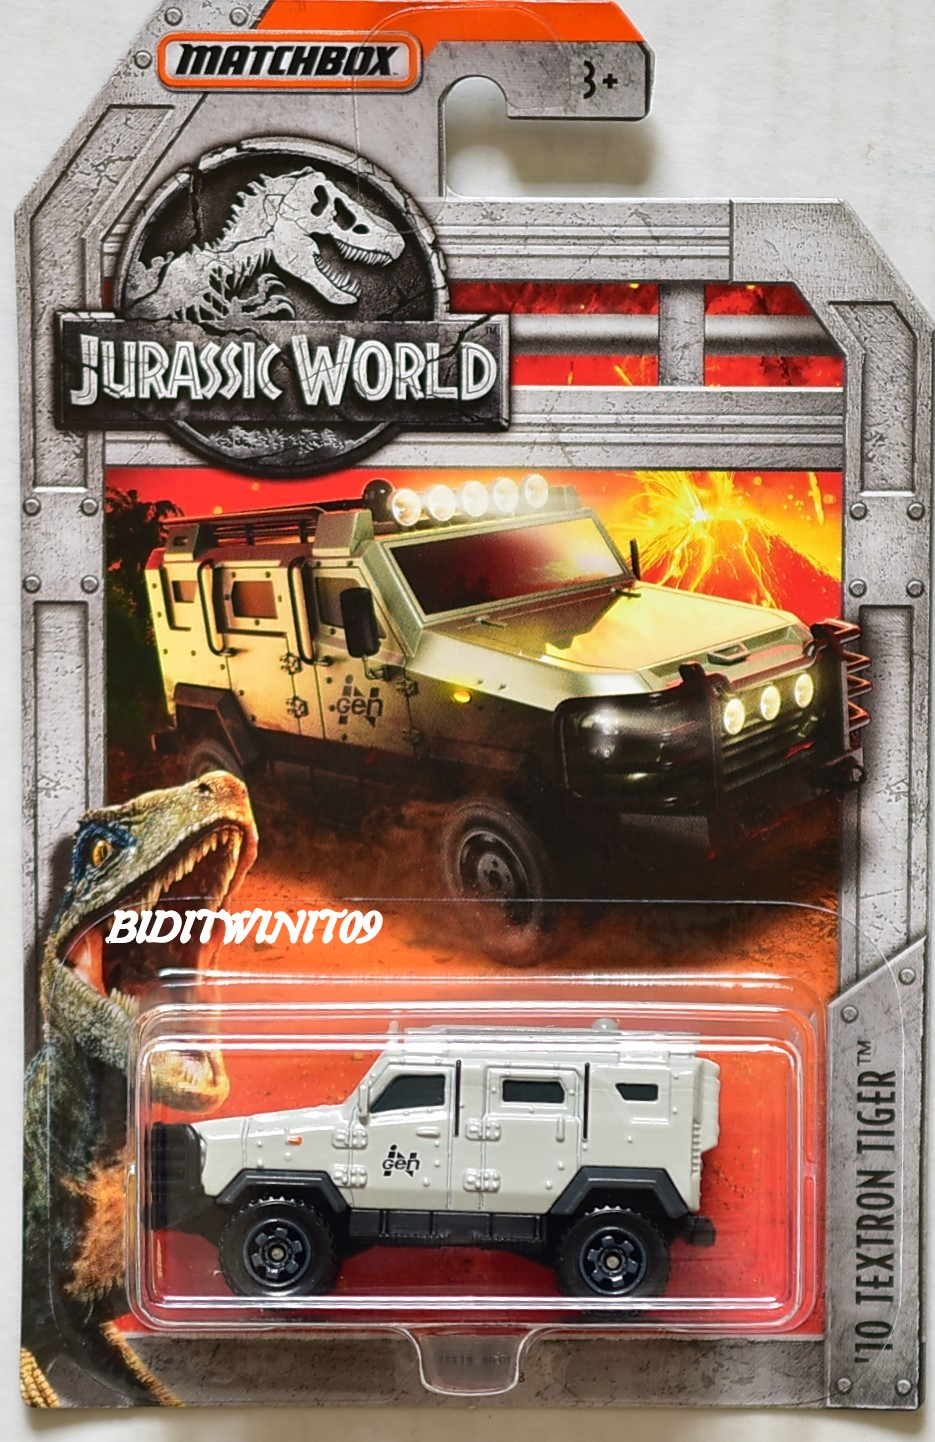 MATCHBOX 2018 JURASSIC WORLD '10 TEXTRON TIGER